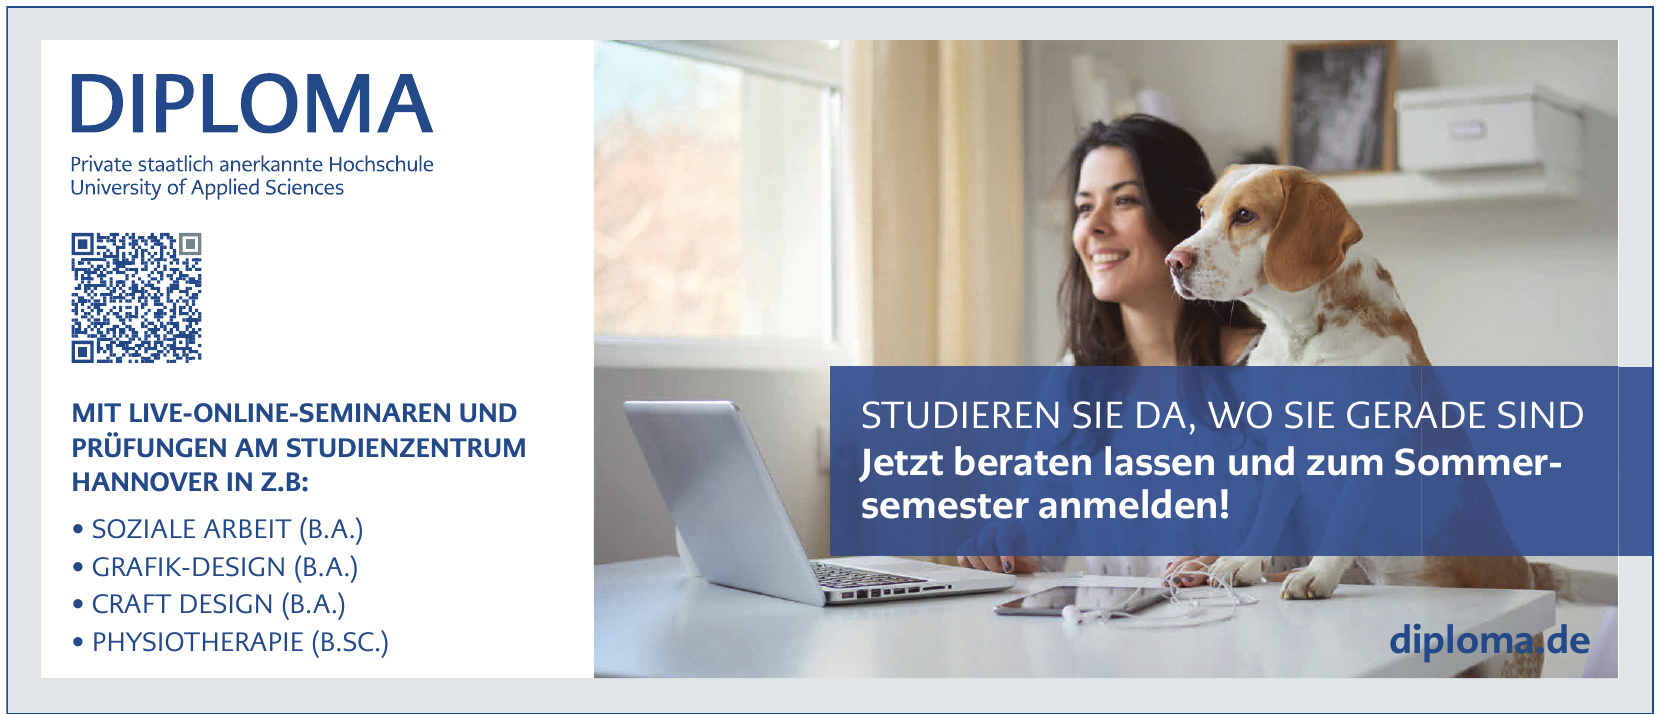 Diploma Private staatlich anerkannte Hochschule University of Applied Sciences